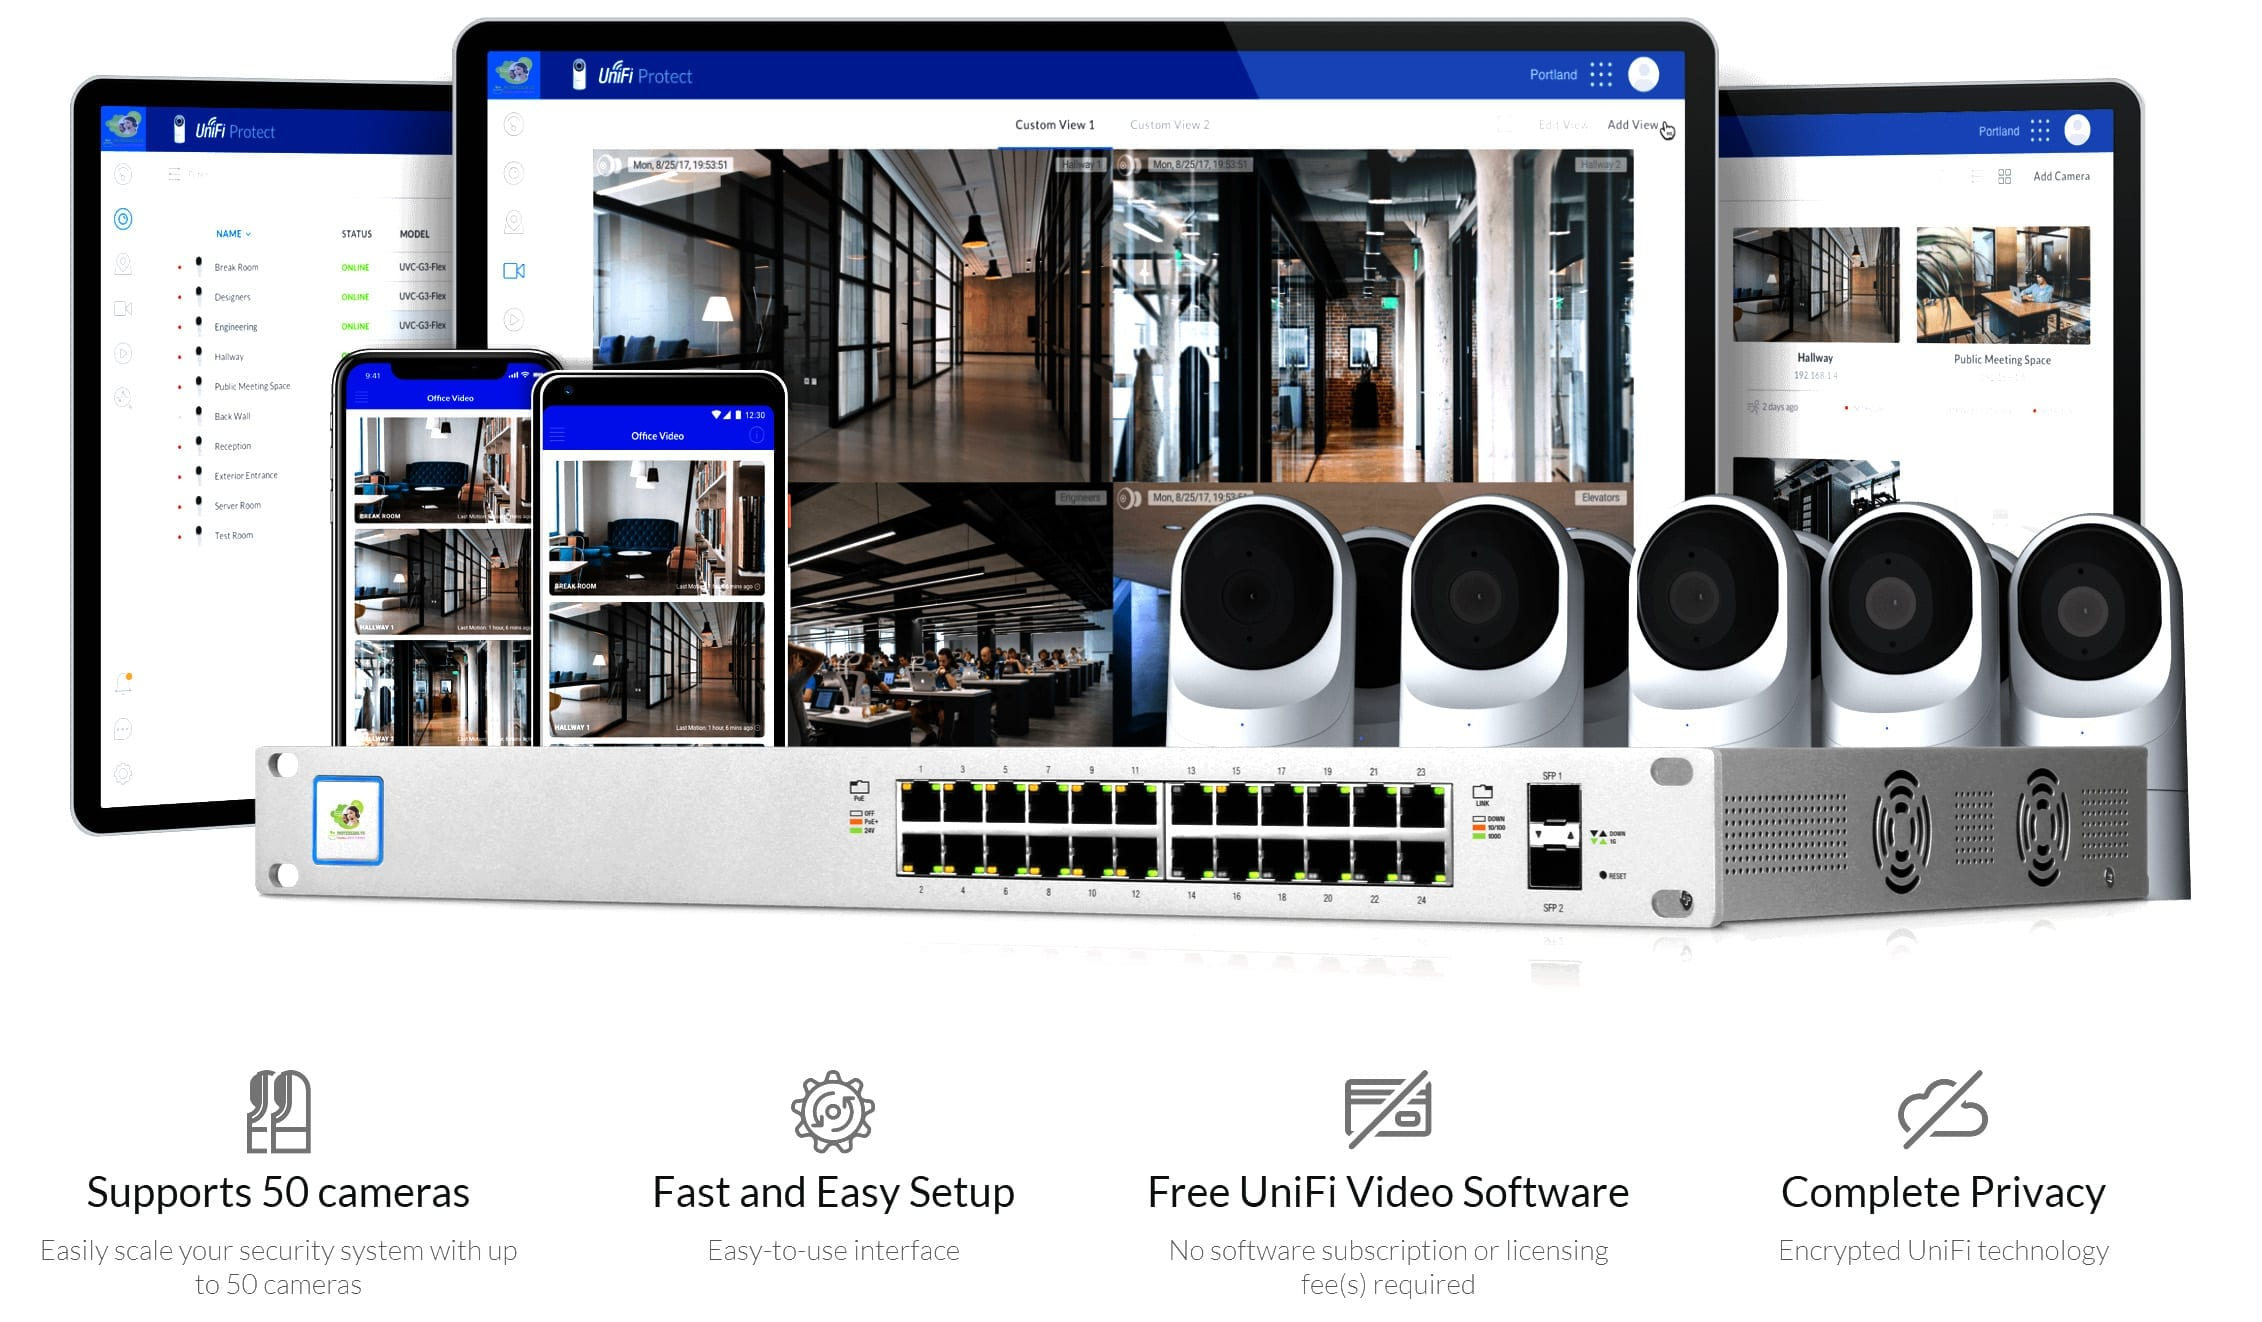 G3 Flex voi Full Surveillance Management and Scalability